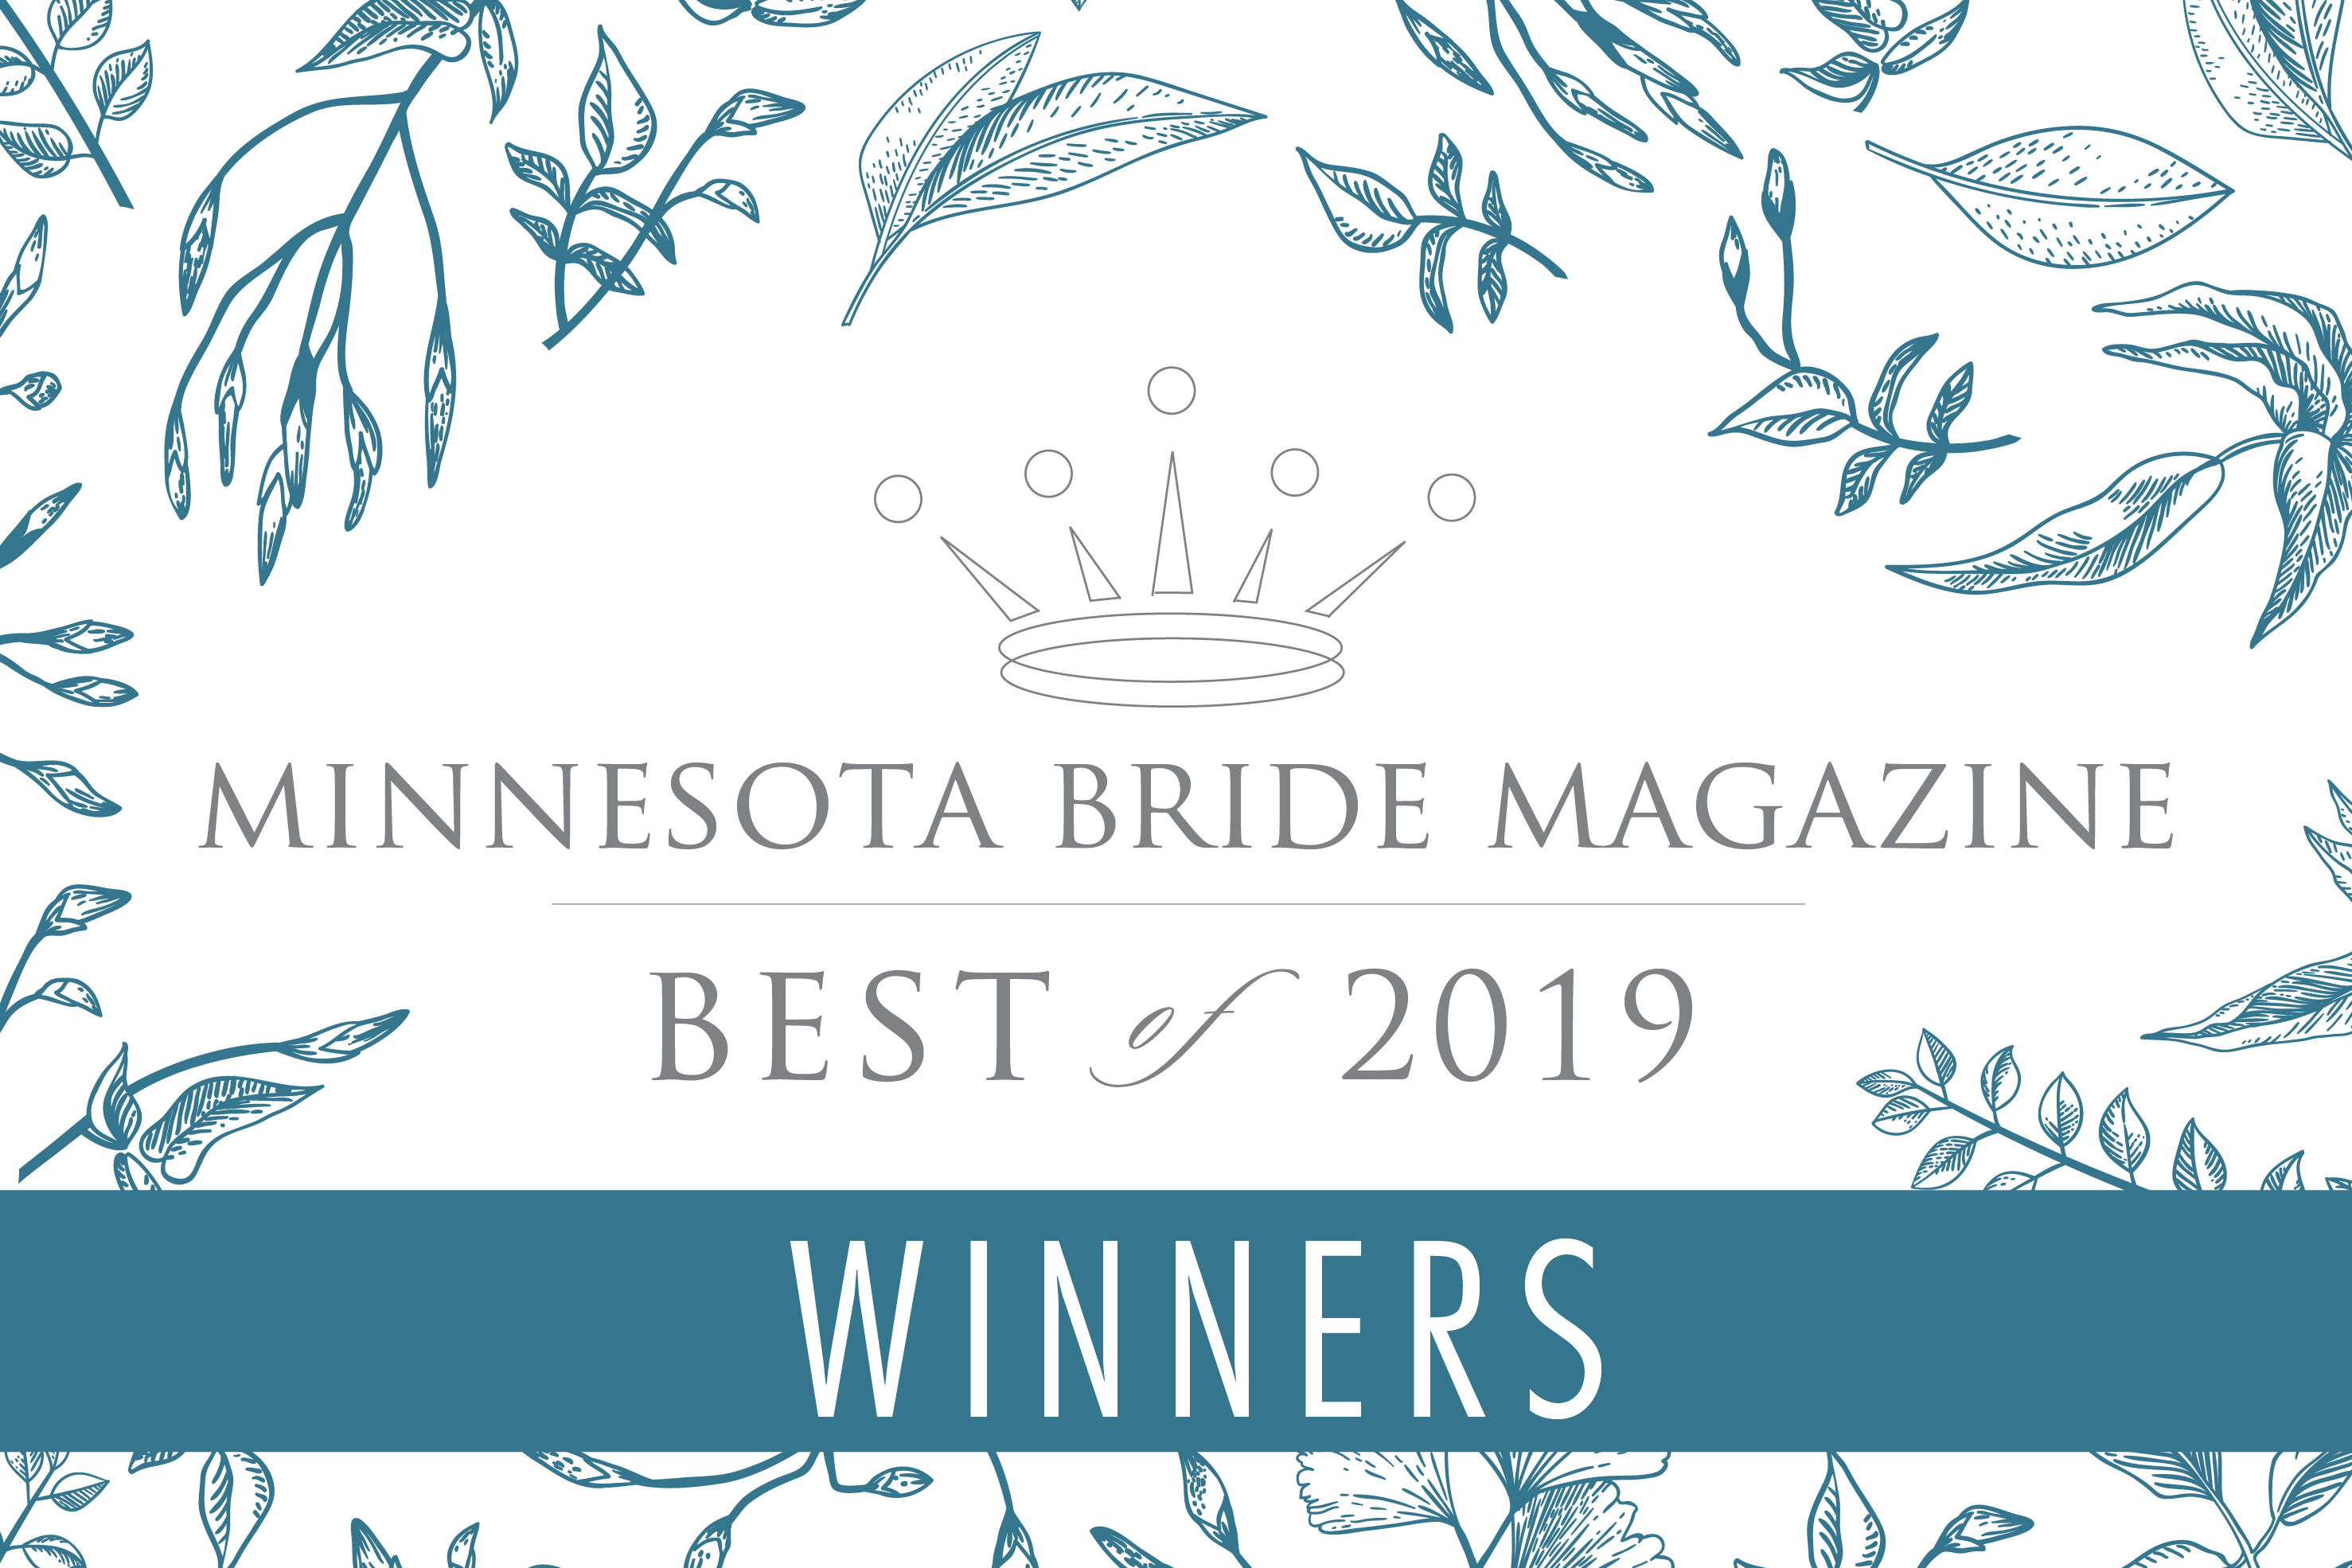 Minnesota Bride Best Of Winners